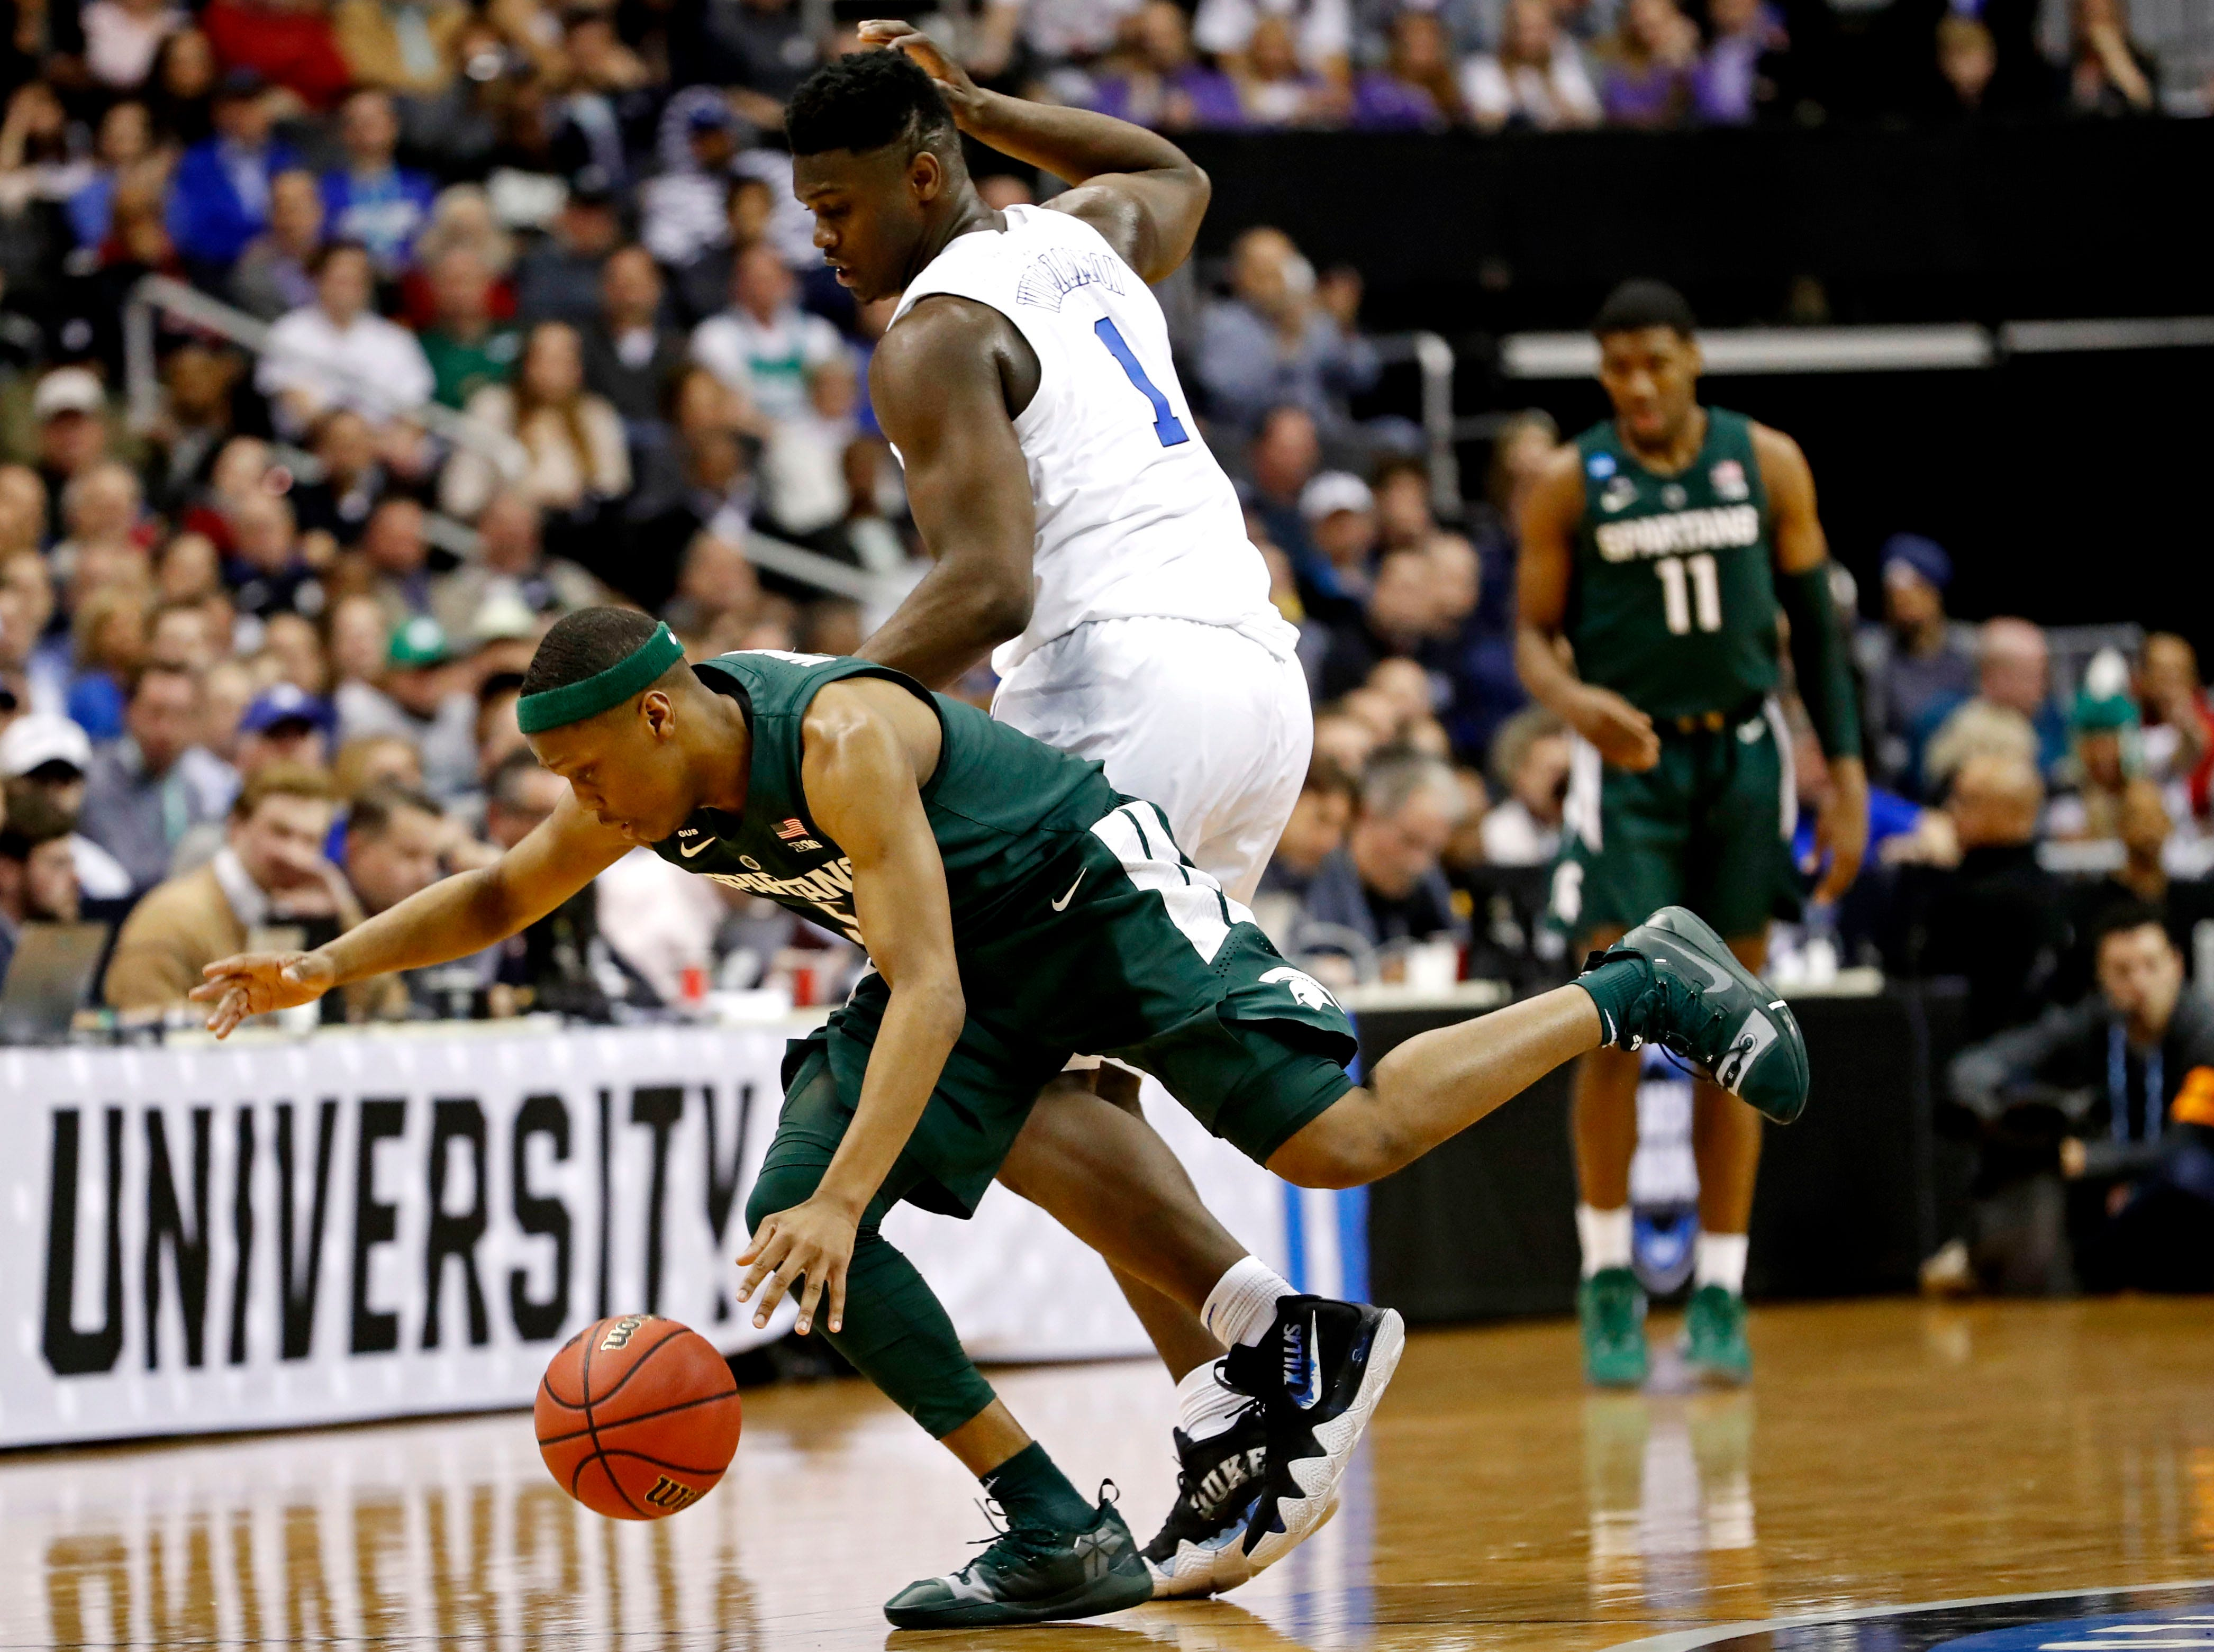 Duke Blue Devils forward Zion Williamson (1) and Michigan State Spartans guard Cassius Winston (5) go for a loose ball during the first half in the championship game of the east regional of the 2019 NCAA Tournament at Capital One Arena.